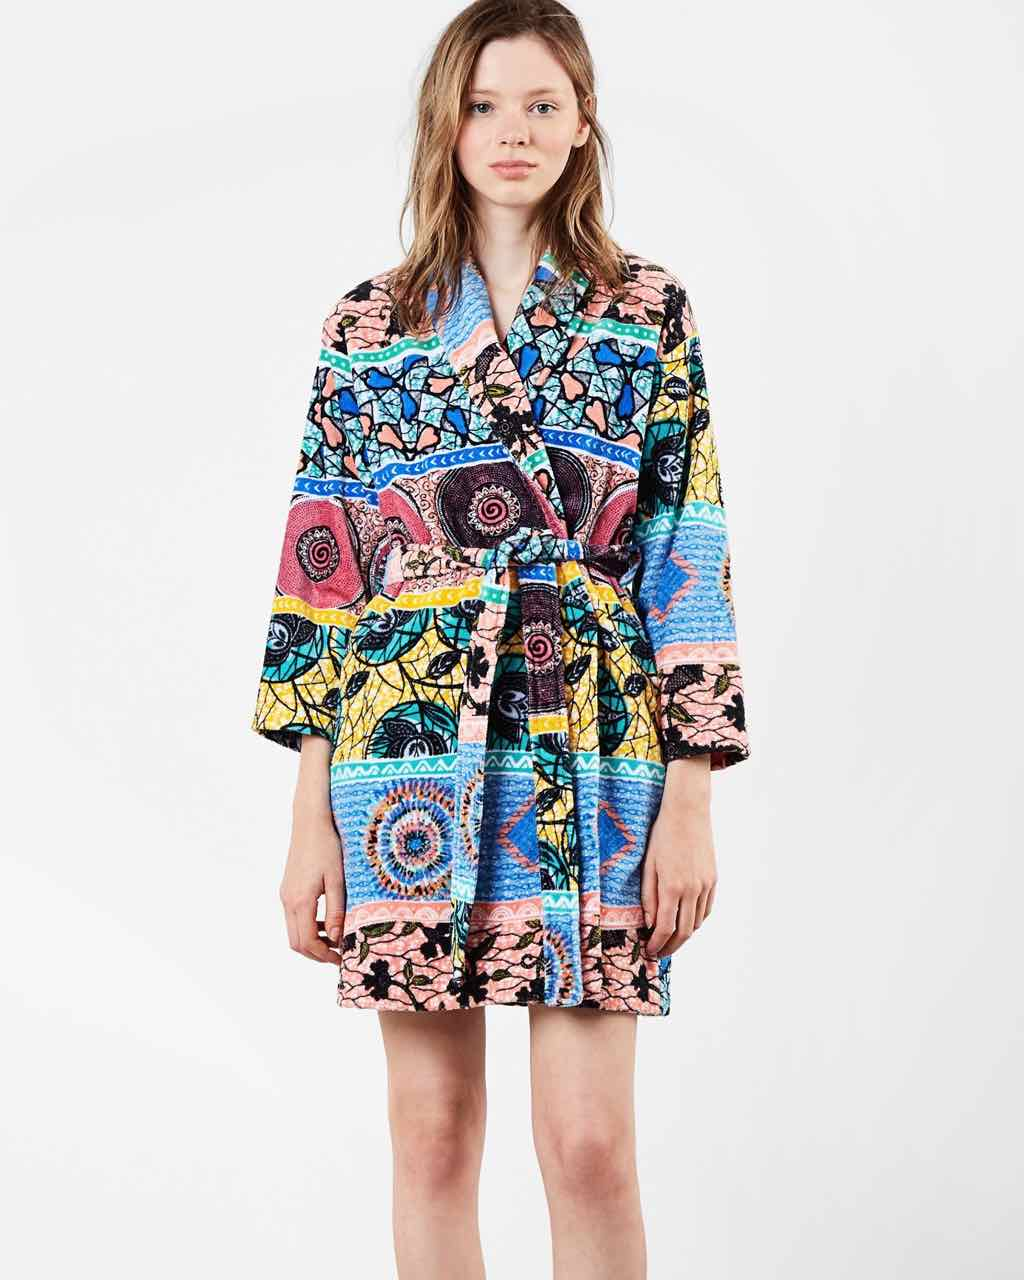 Desigual Bathrobes, USA